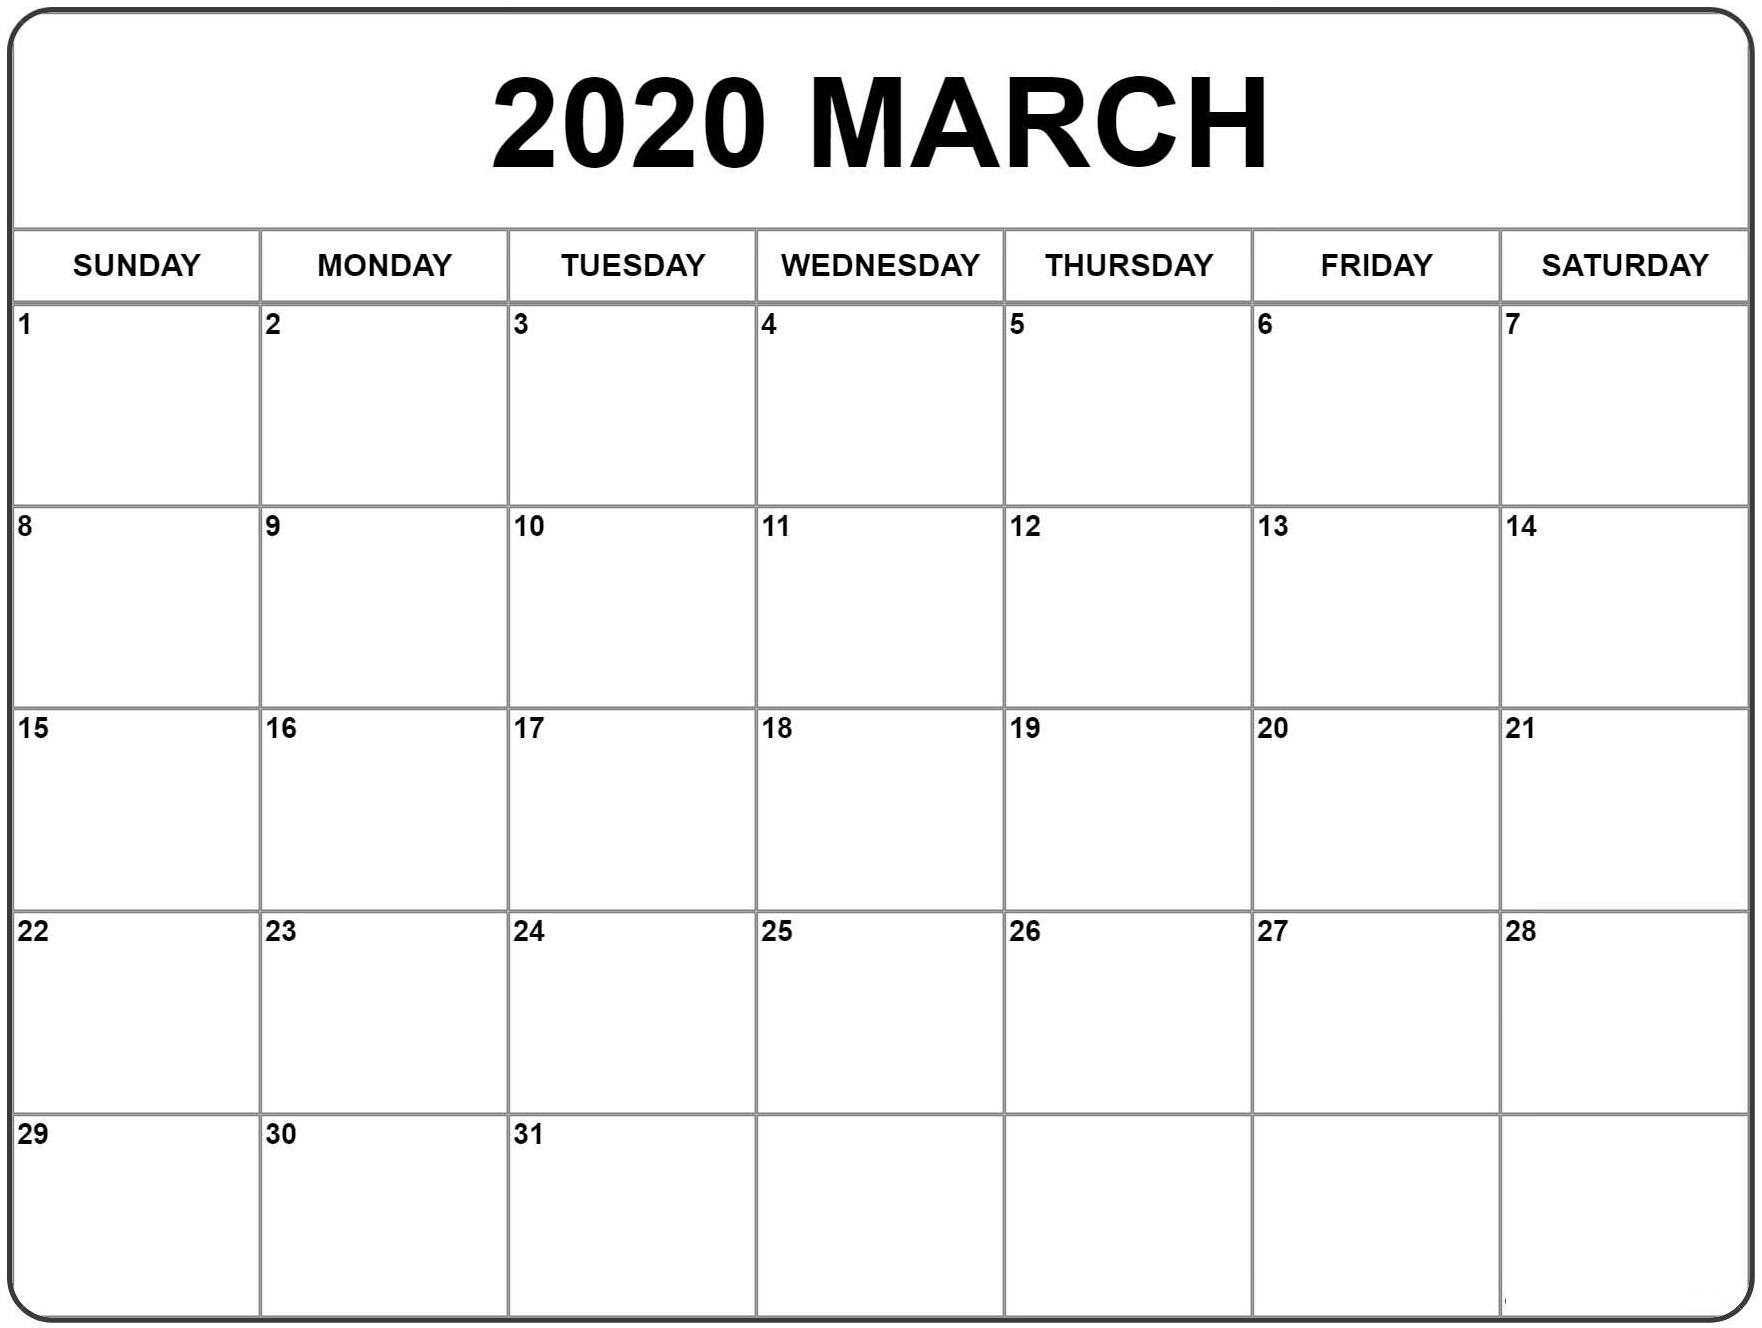 Monthly Calendar March 2020 Printable Template - Set Your